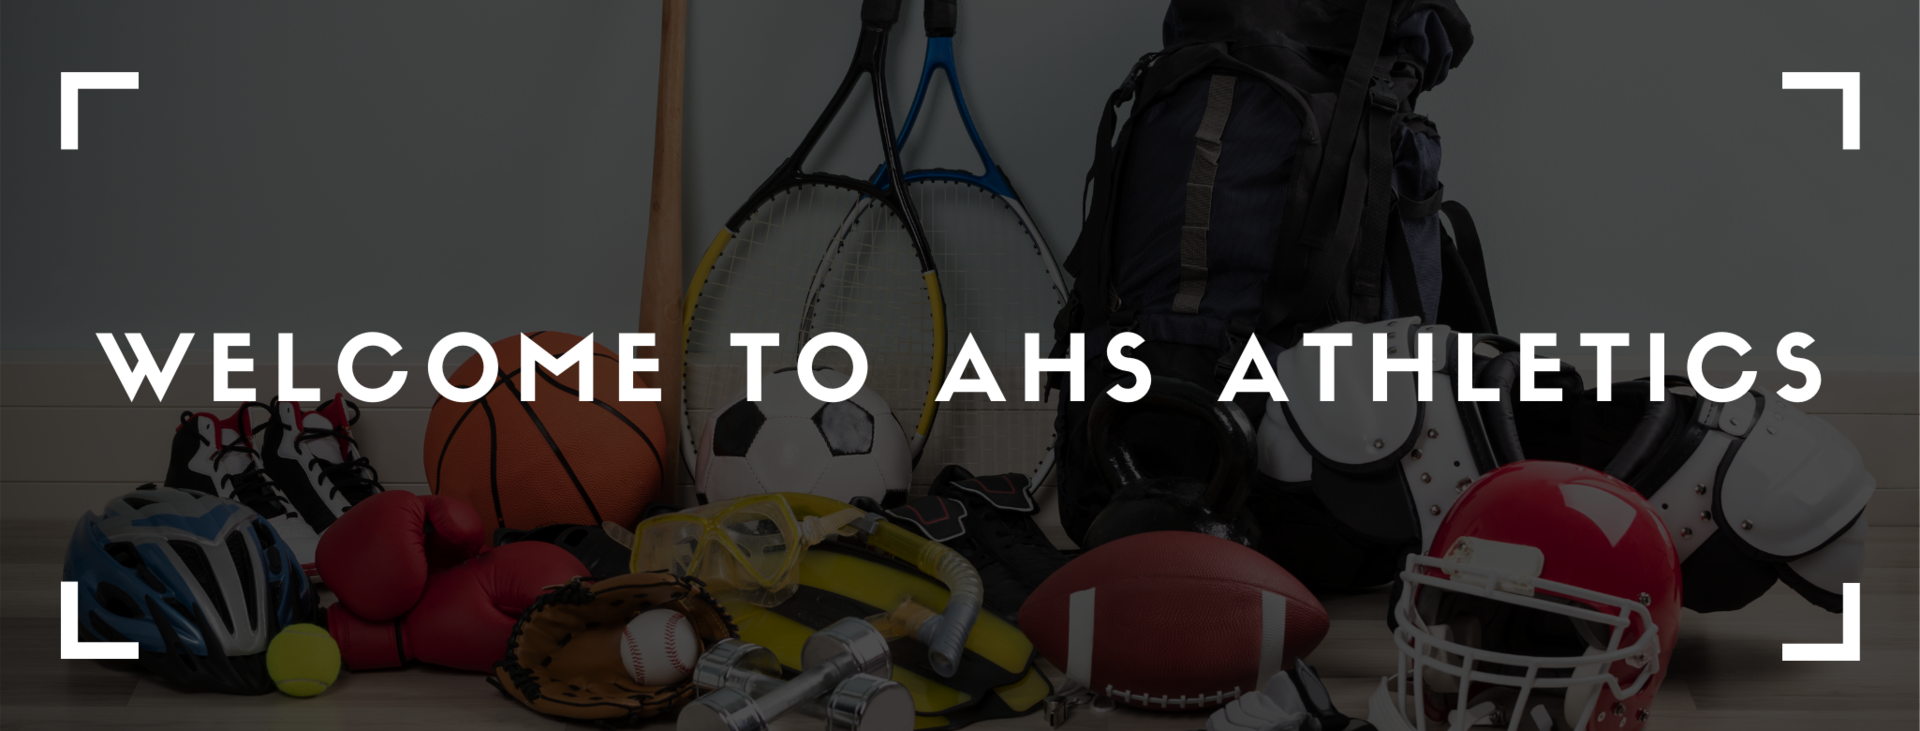 Welcome to AHS Athletics